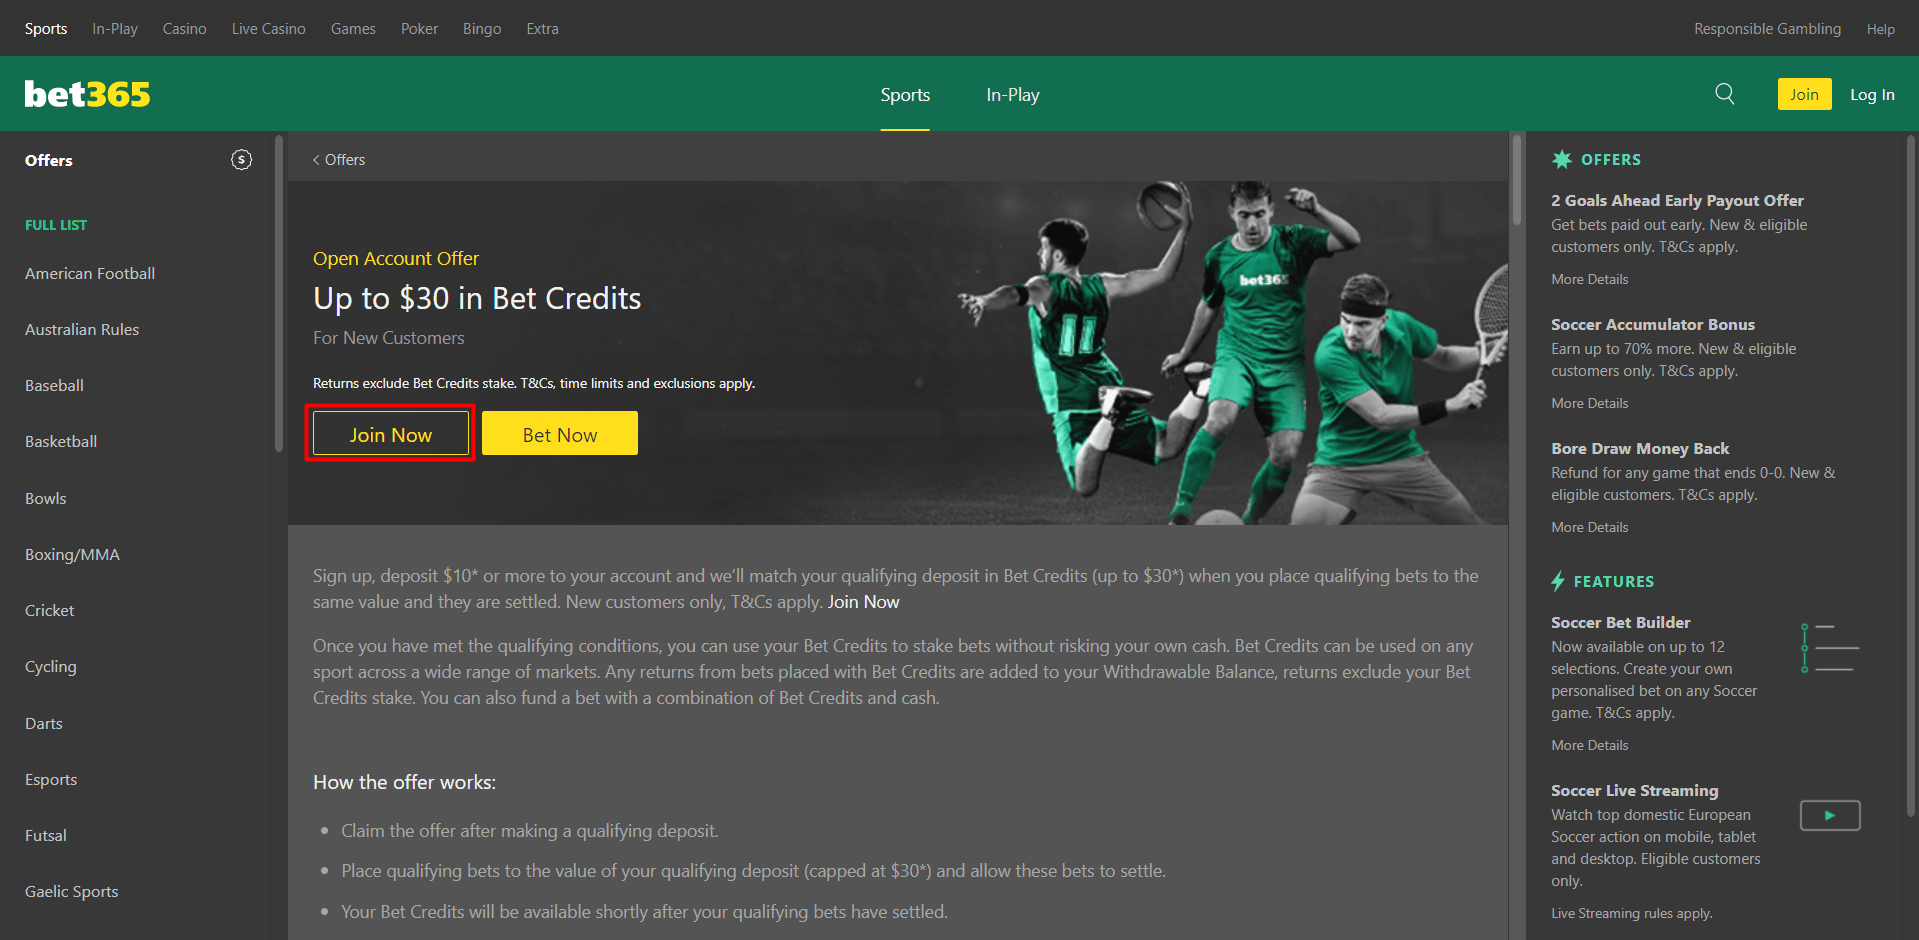 Screenshot of welcome offer and free bet from Bet365 bookmaker